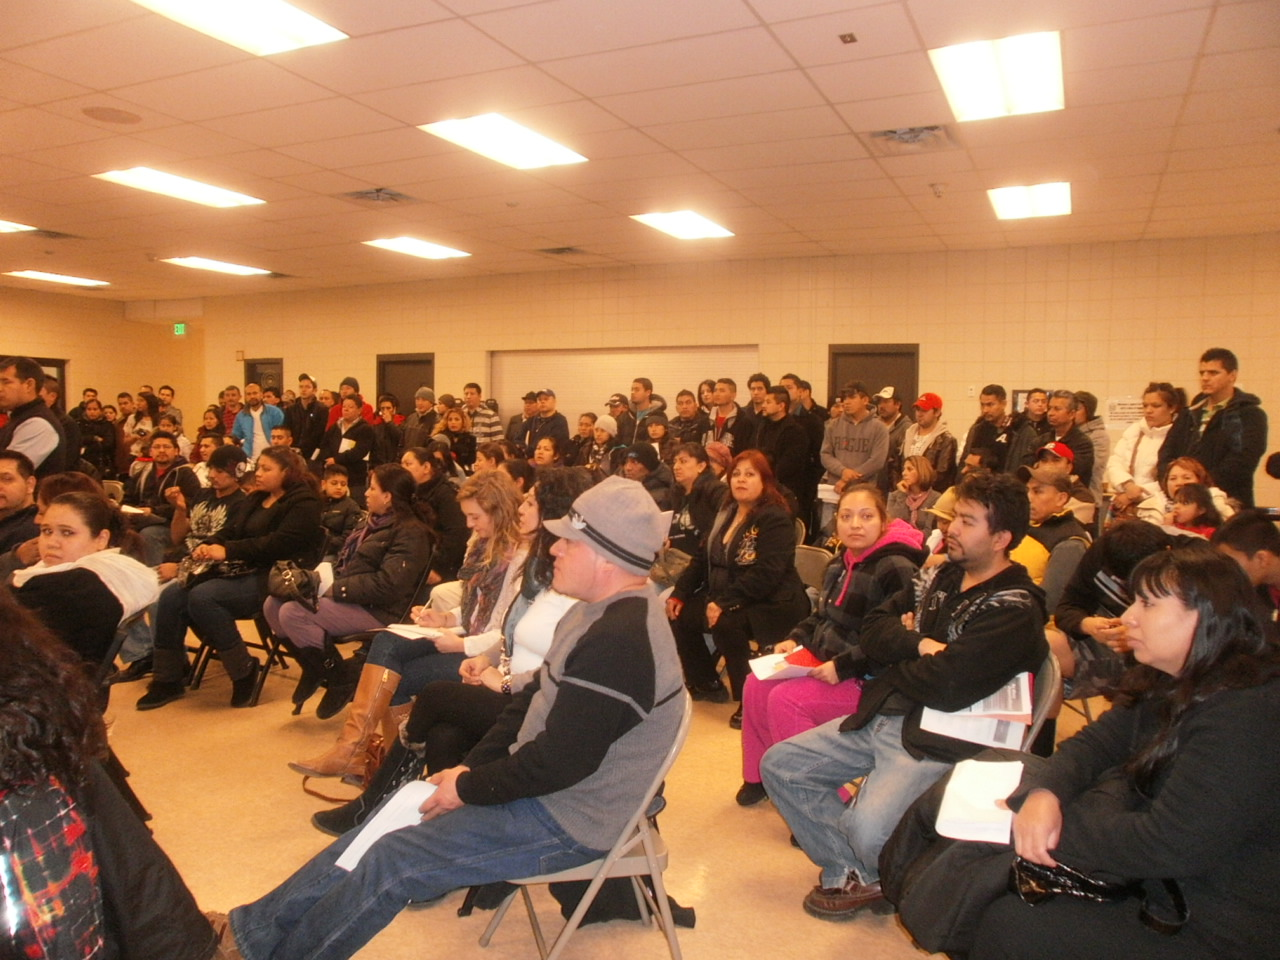 Crowd listens intently to immigration discussion at January 25 meeting at Waite House. (Photo courtesy of Rosa C.)